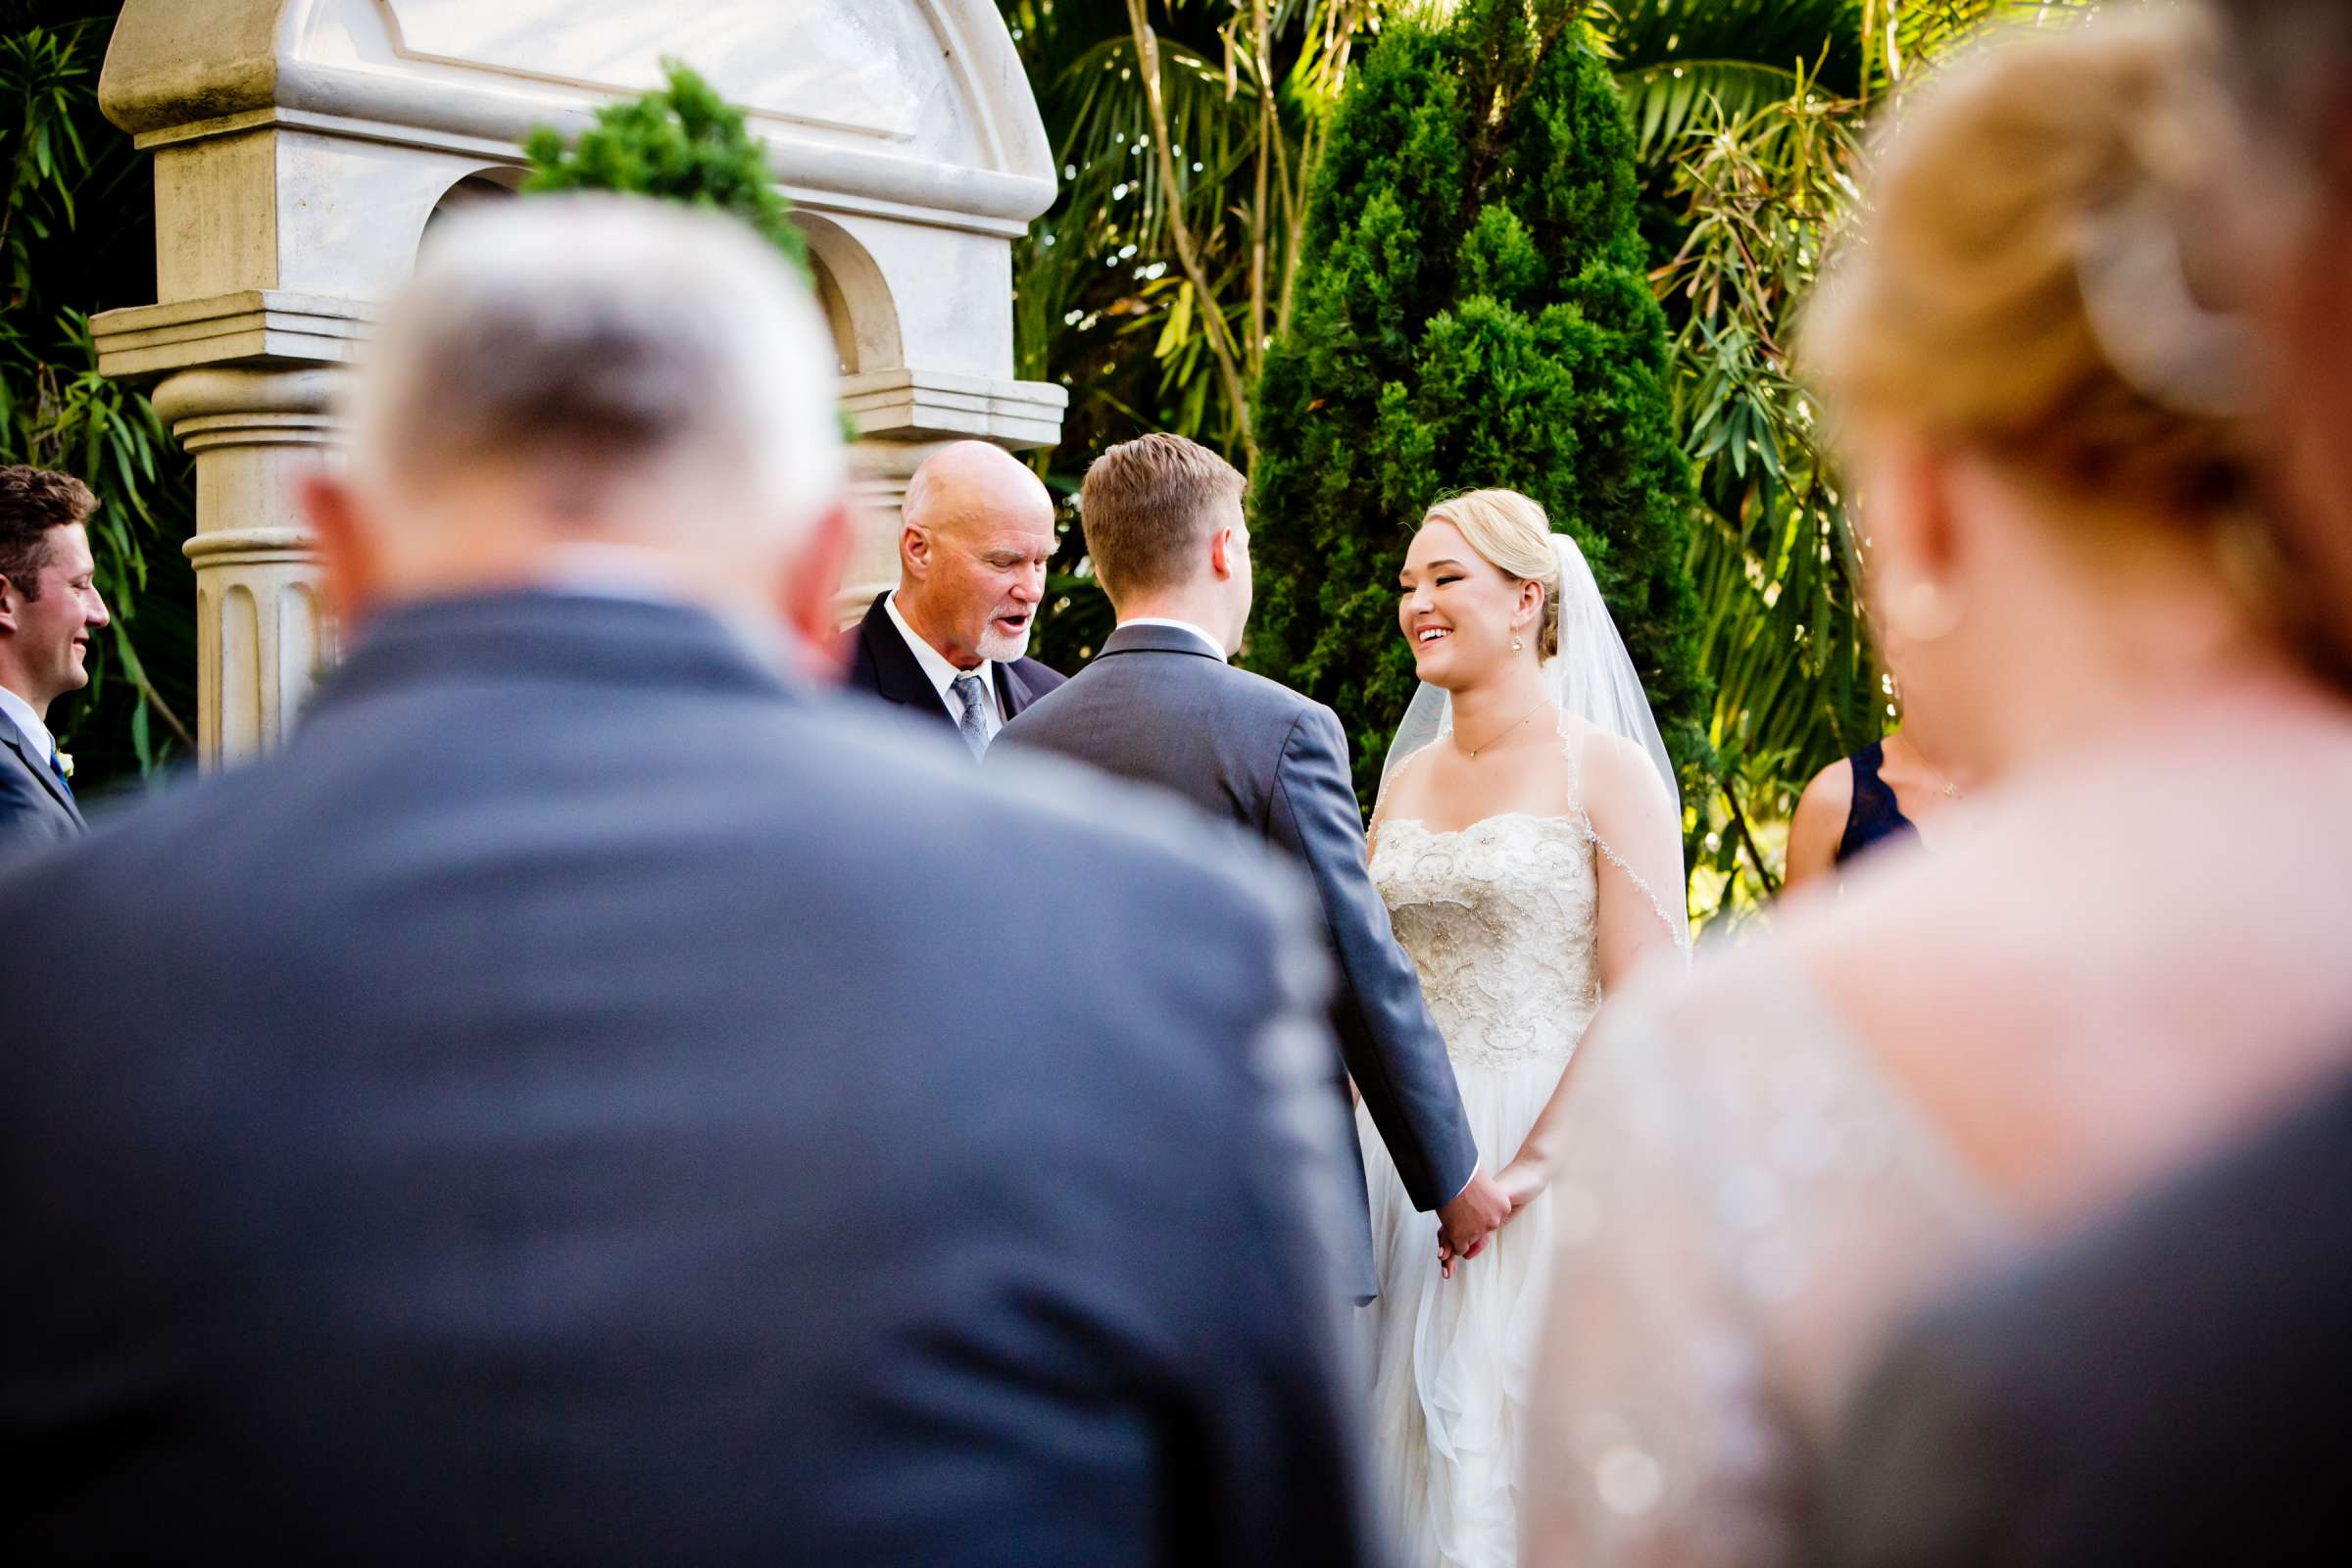 The Prado Wedding coordinated by Sublime Weddings, Ashley and Andrew Wedding Photo #30 by True Photography